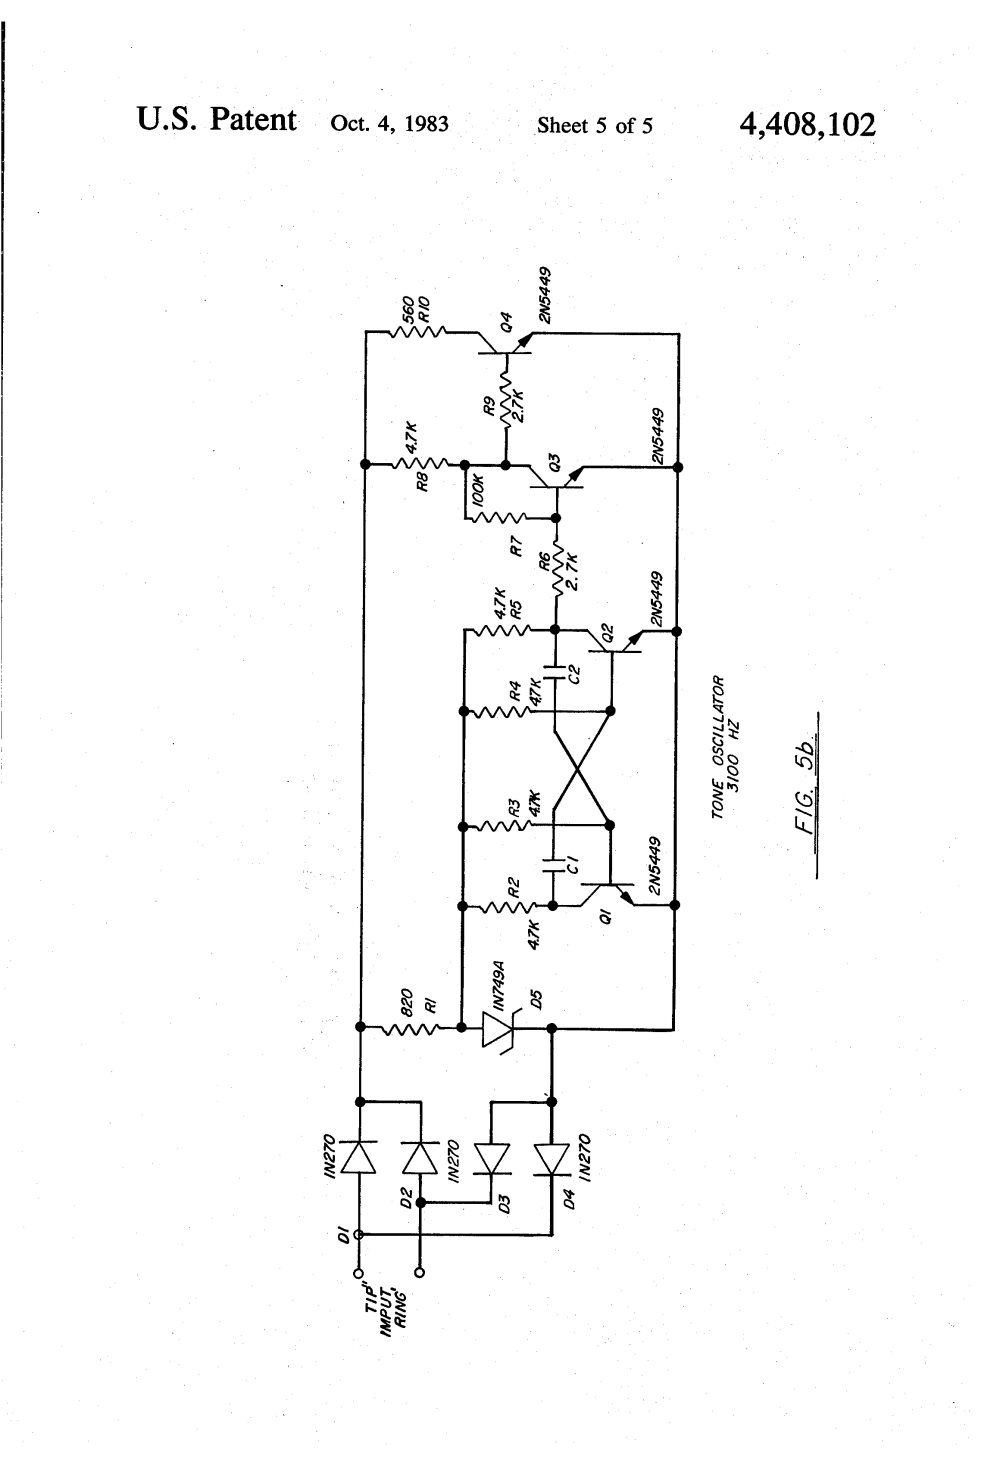 medium resolution of patent us4408102 two wire exchange telephone system google patents circuit diagram flip flop circuit diagram rotary dial phone wiring